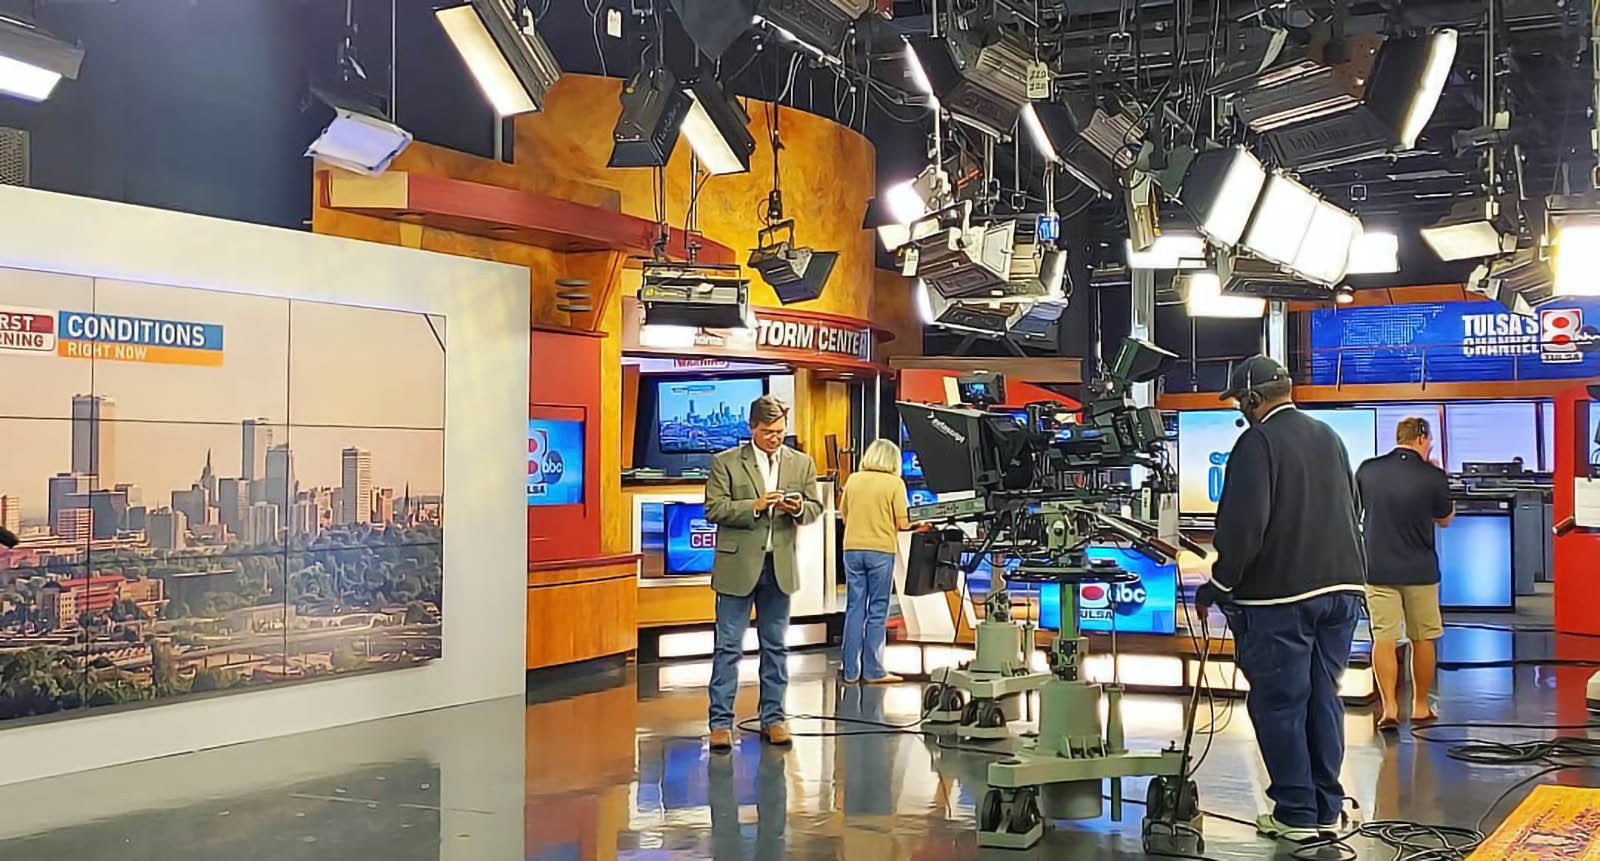 First Warning Weather Team